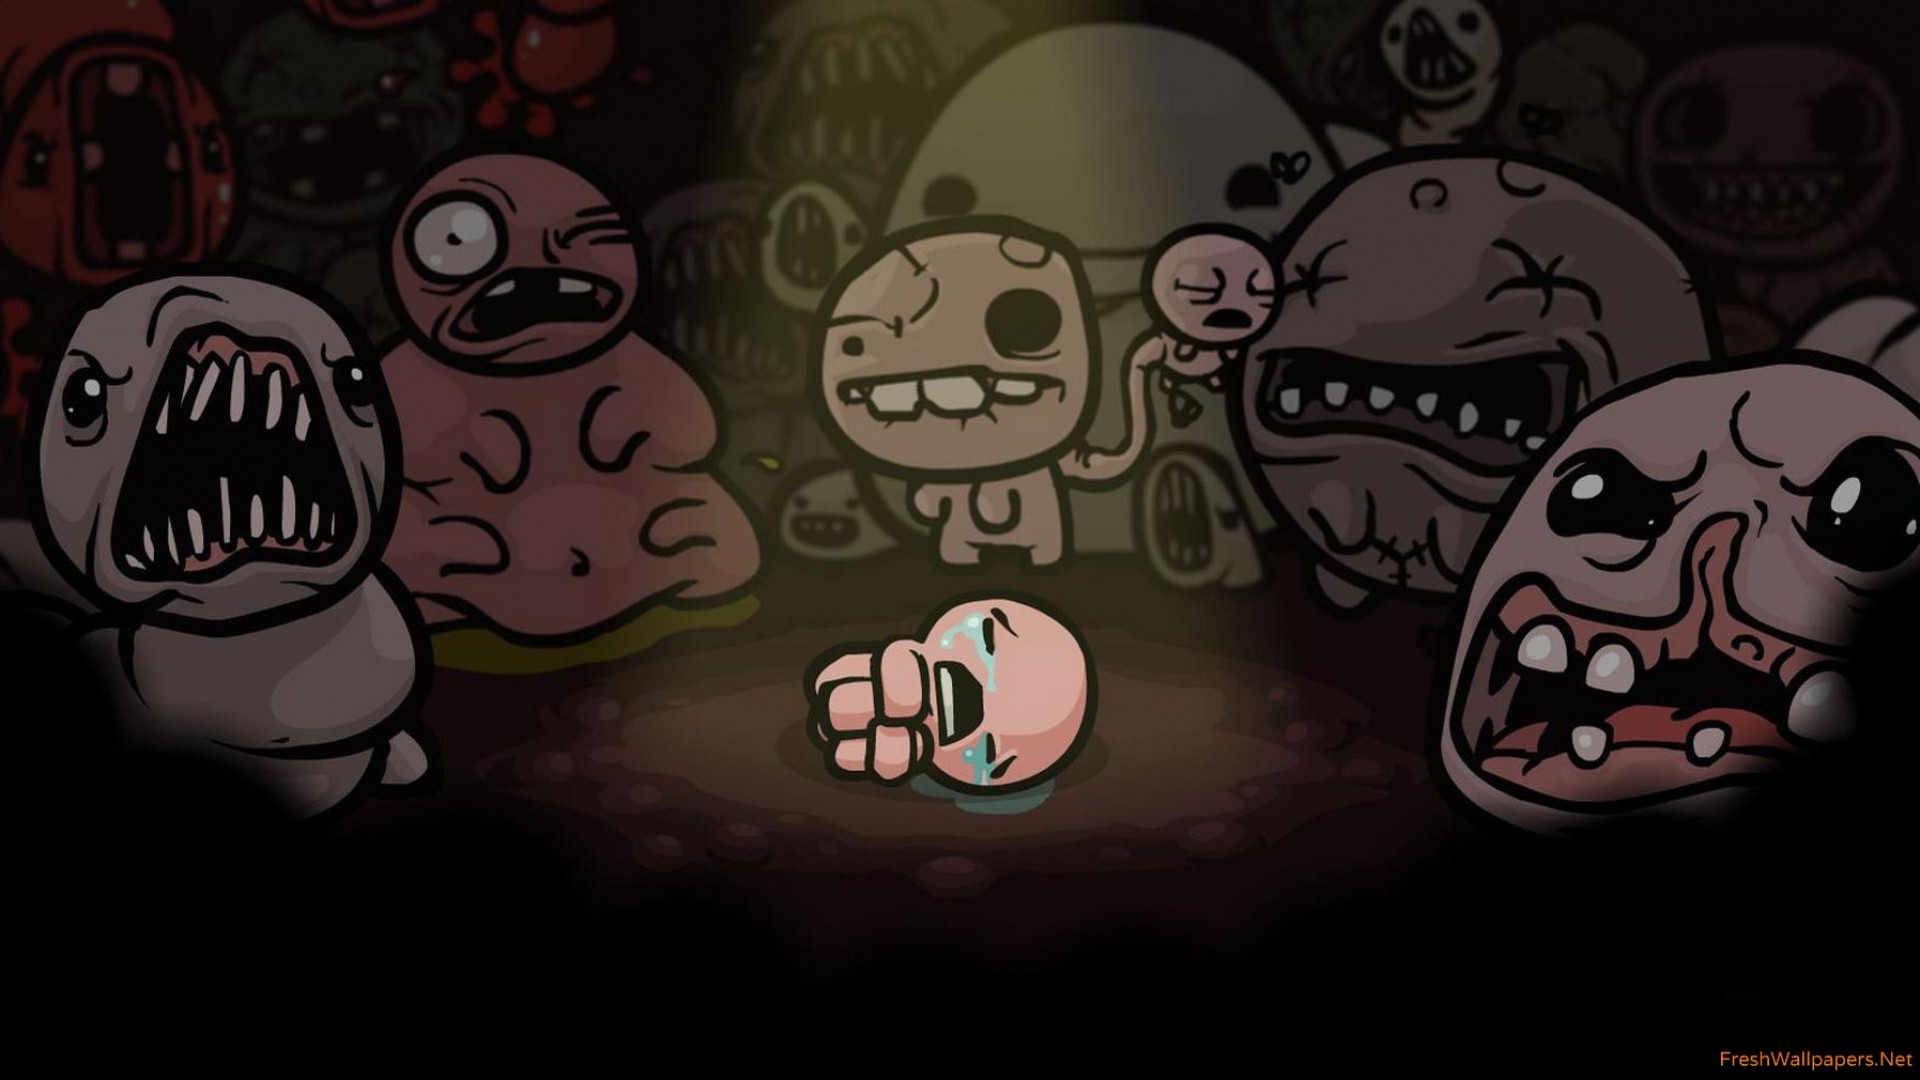 The Binding of Isaac wallpapers Freshwallpapers 1920x1080